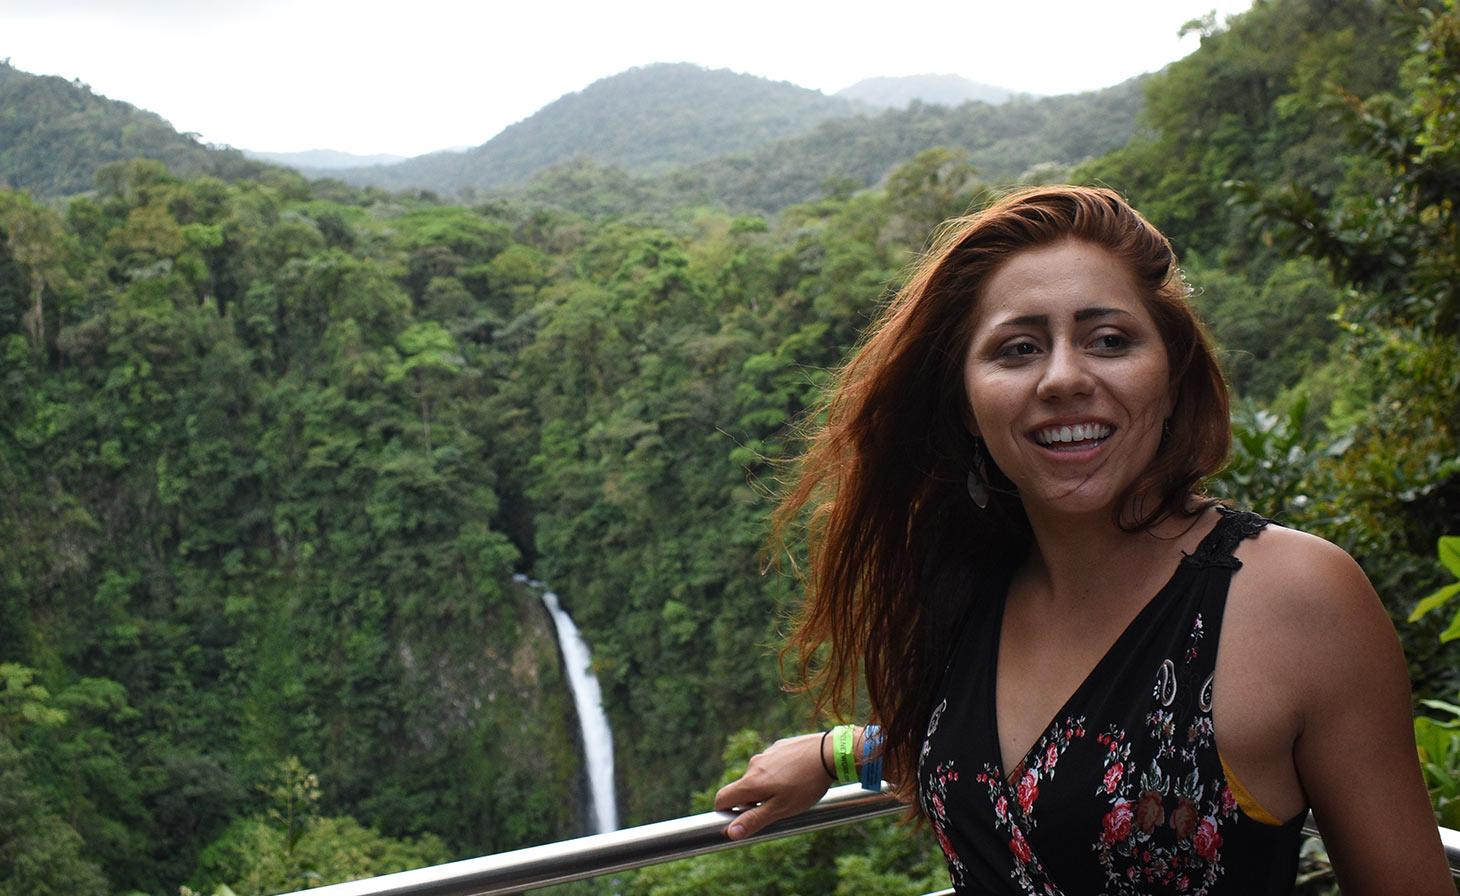 Tonya Allison in front of waterfall in tropical forest